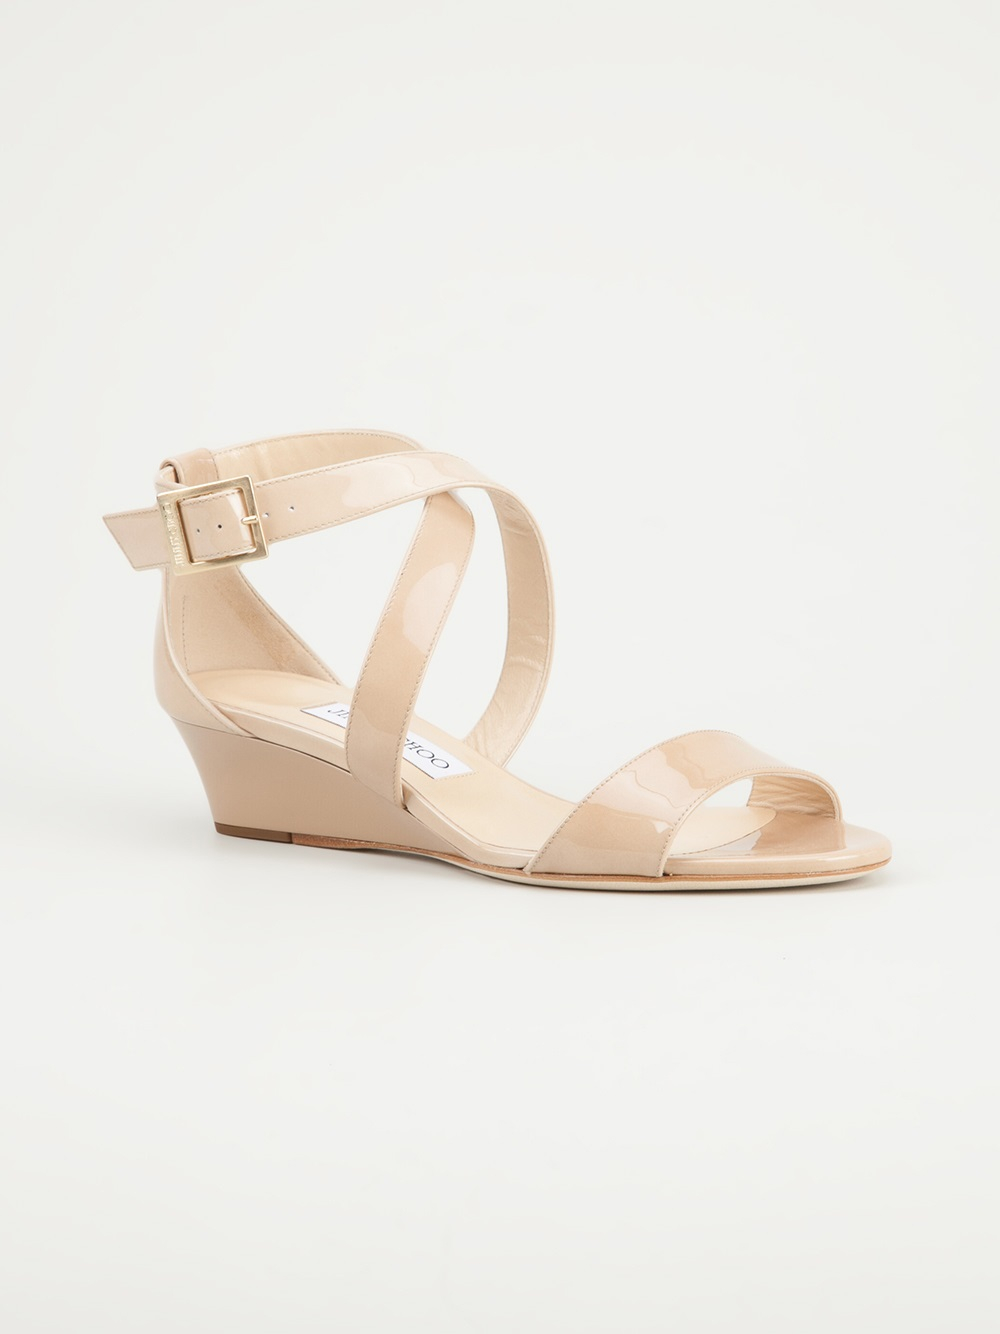 b0052baa8d1 Lyst - Jimmy Choo Chiara 35mm Sandal in Natural